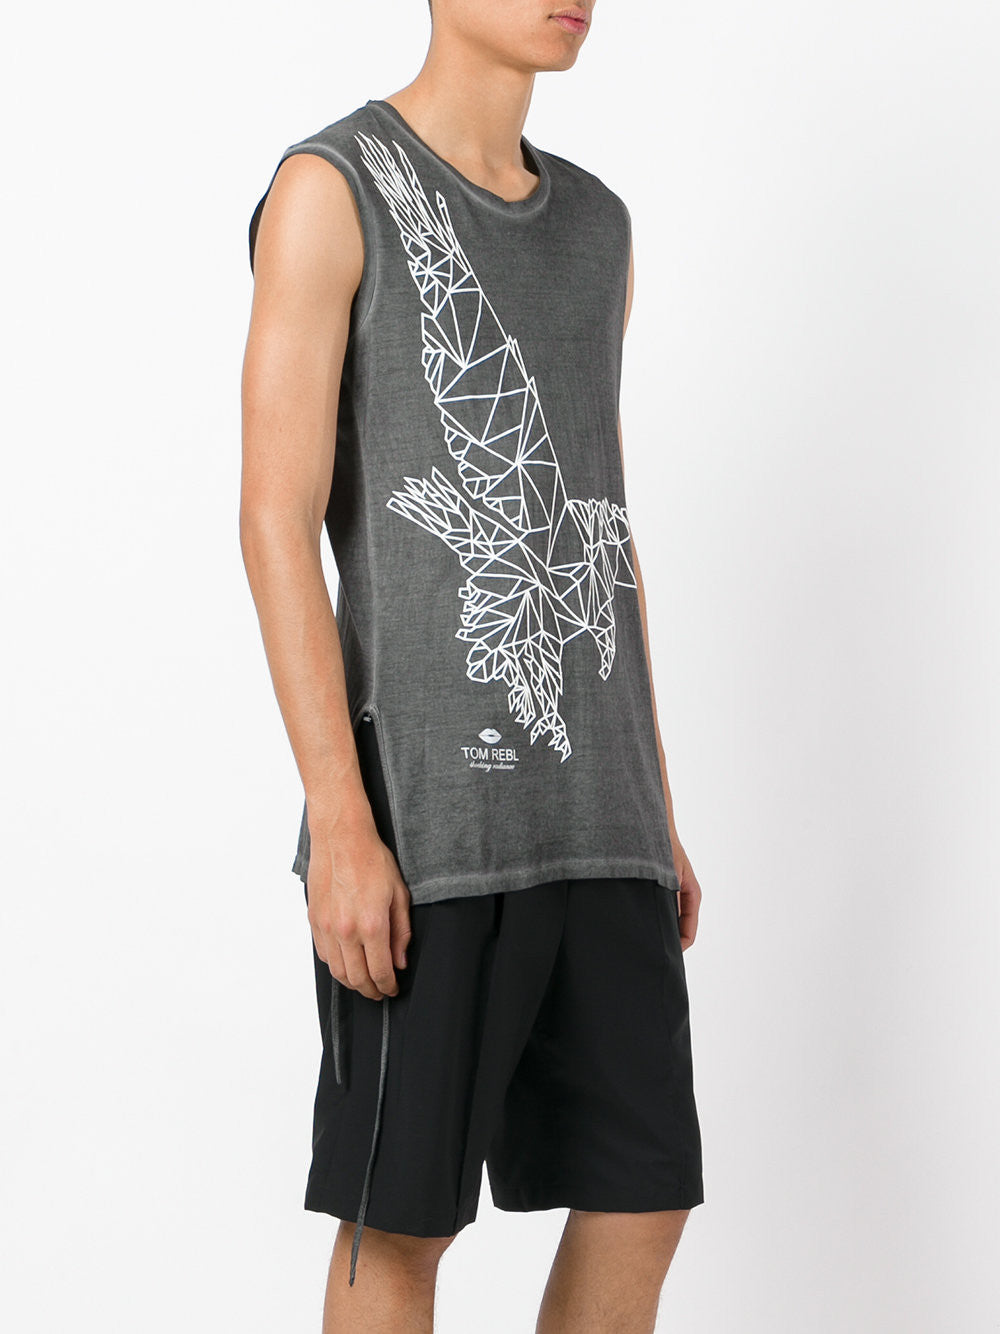 Sleeveless Graphic Tee | TU0638/2498S20P